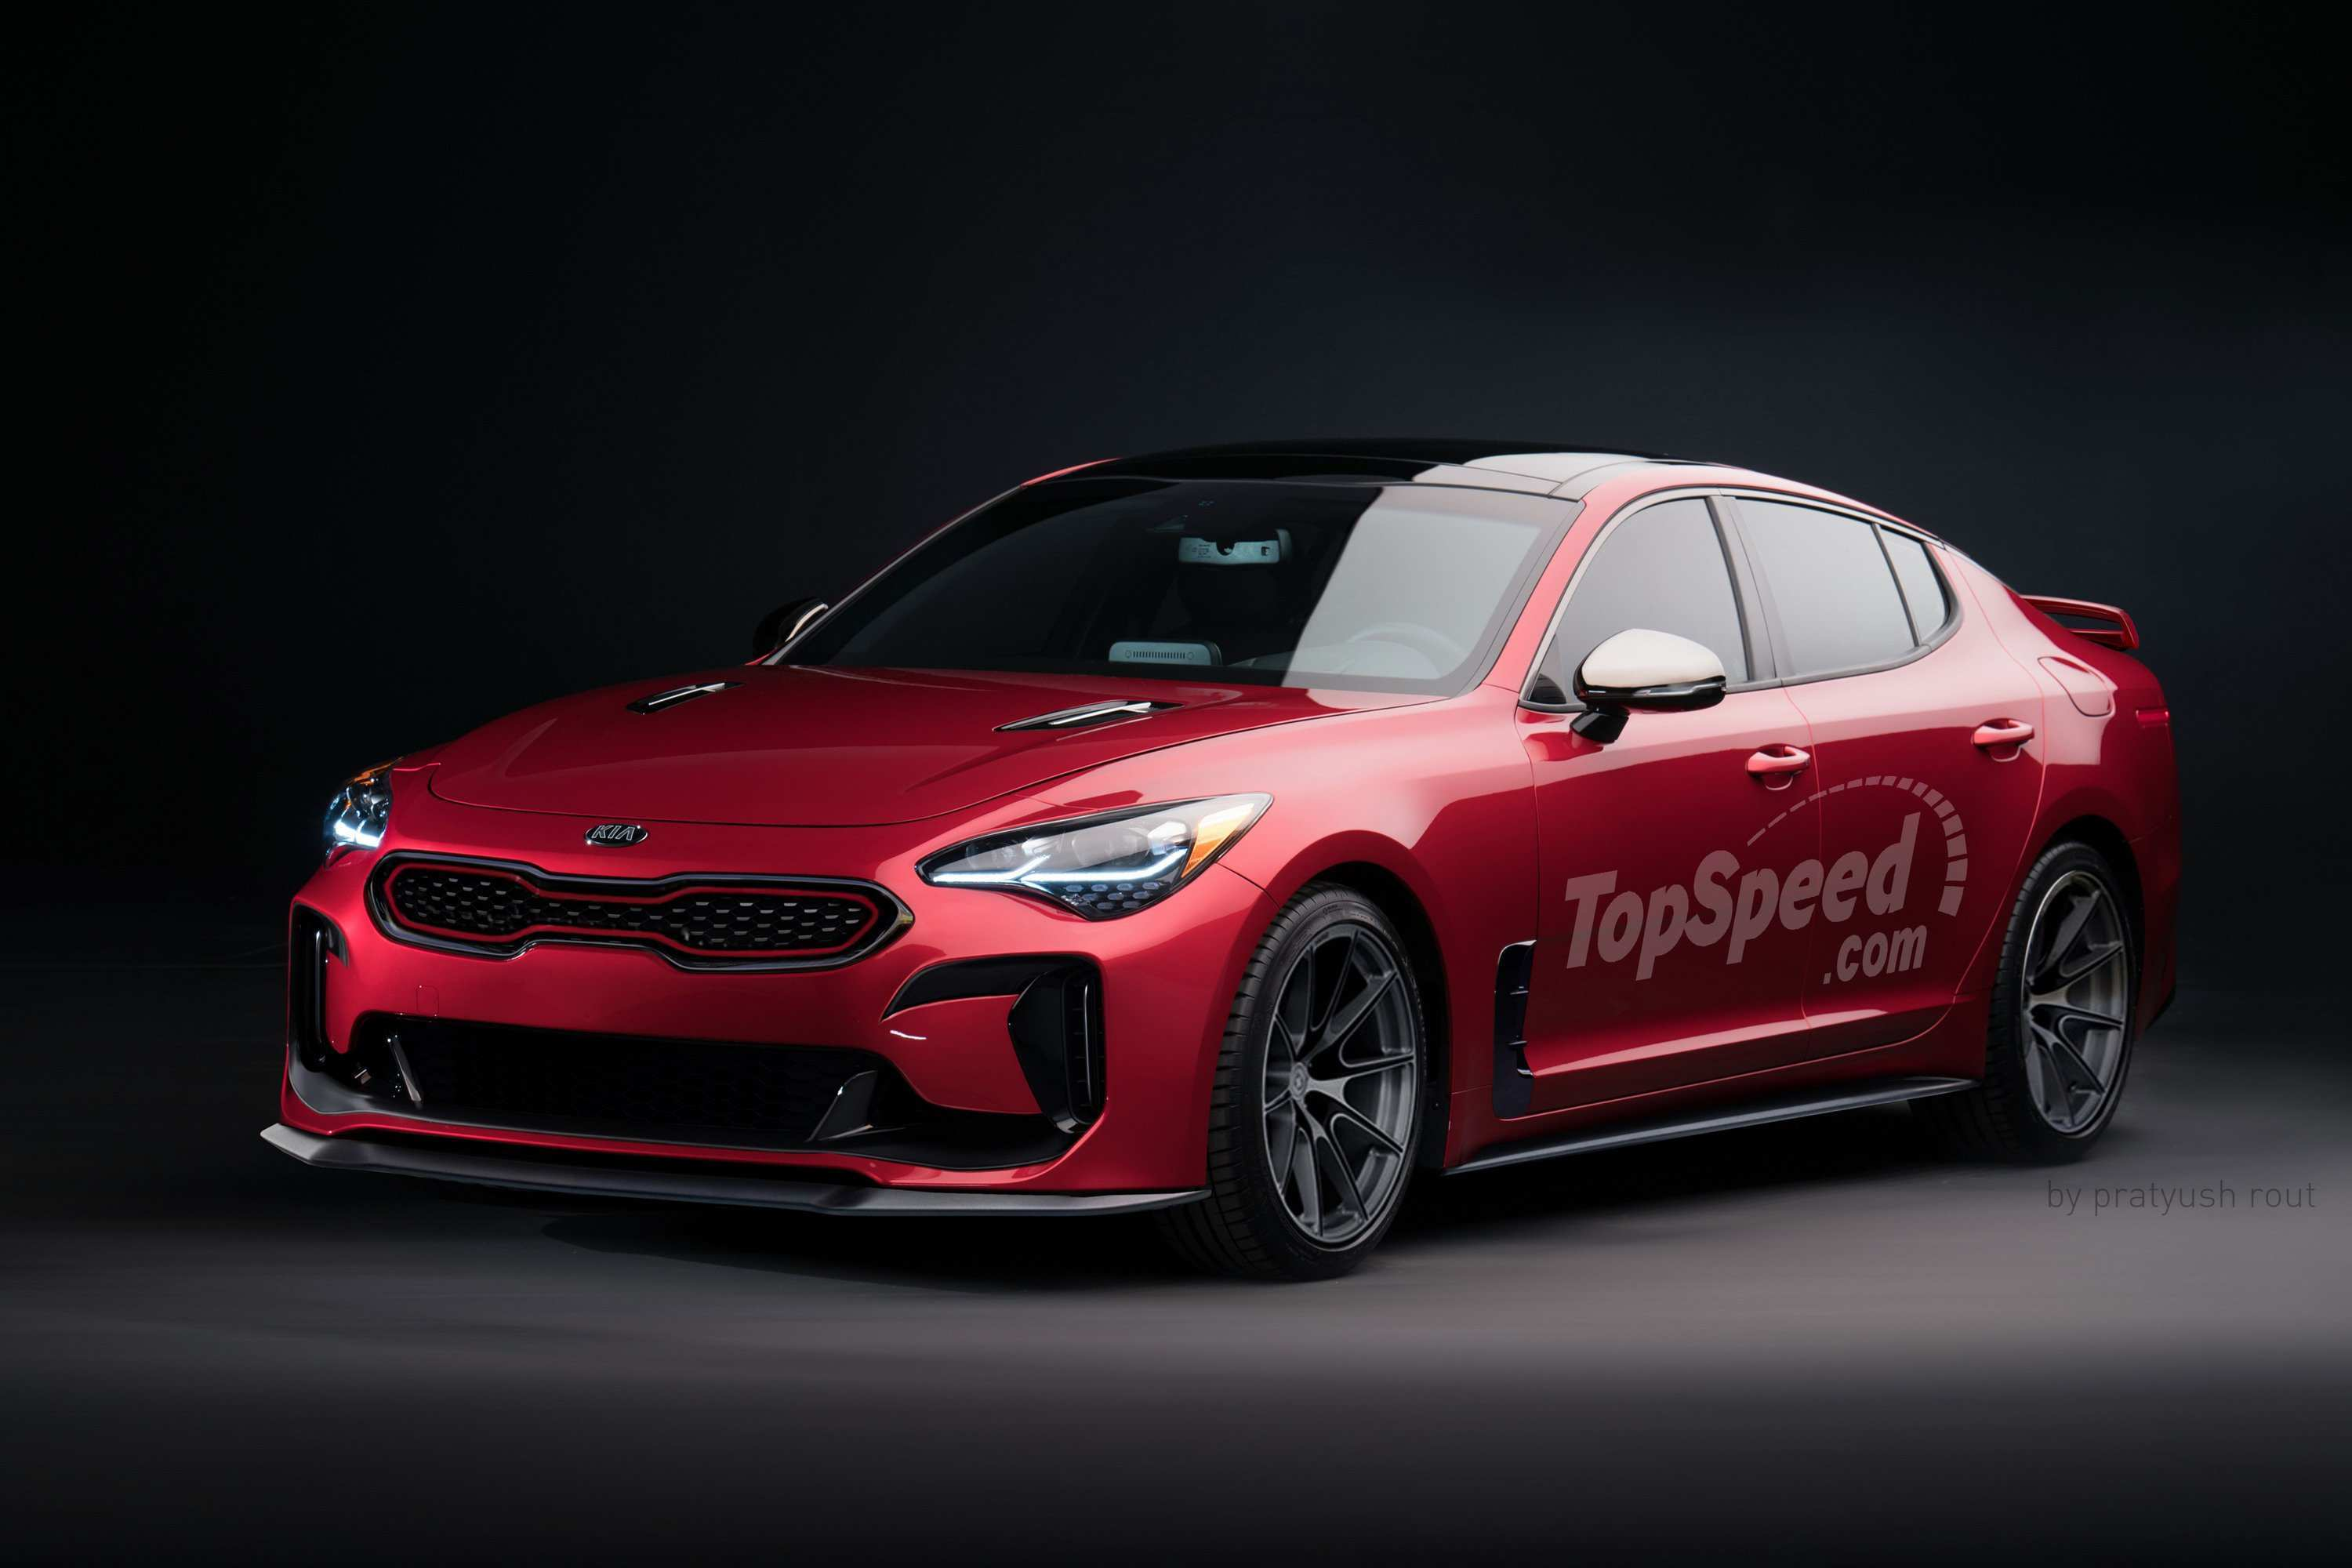 80 The 2019 Kia Stinger Gt Specs First Drive